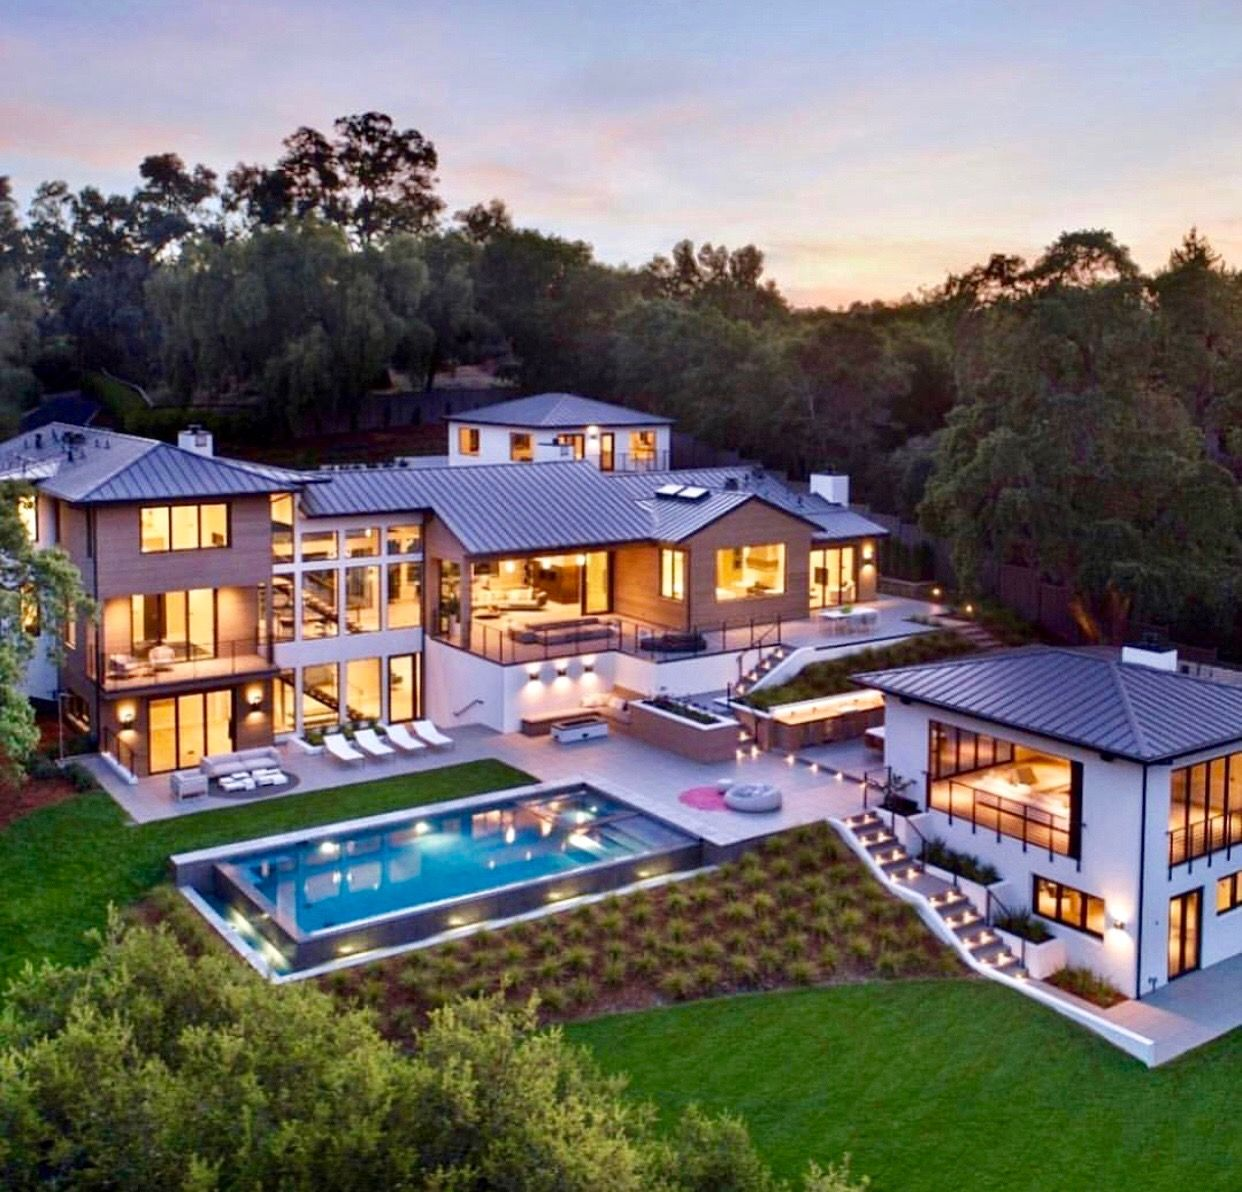 Follow Me Timejy On Pinterest For More Luxury Homes Dream Houses House Designs Exterior Dream House Exterior